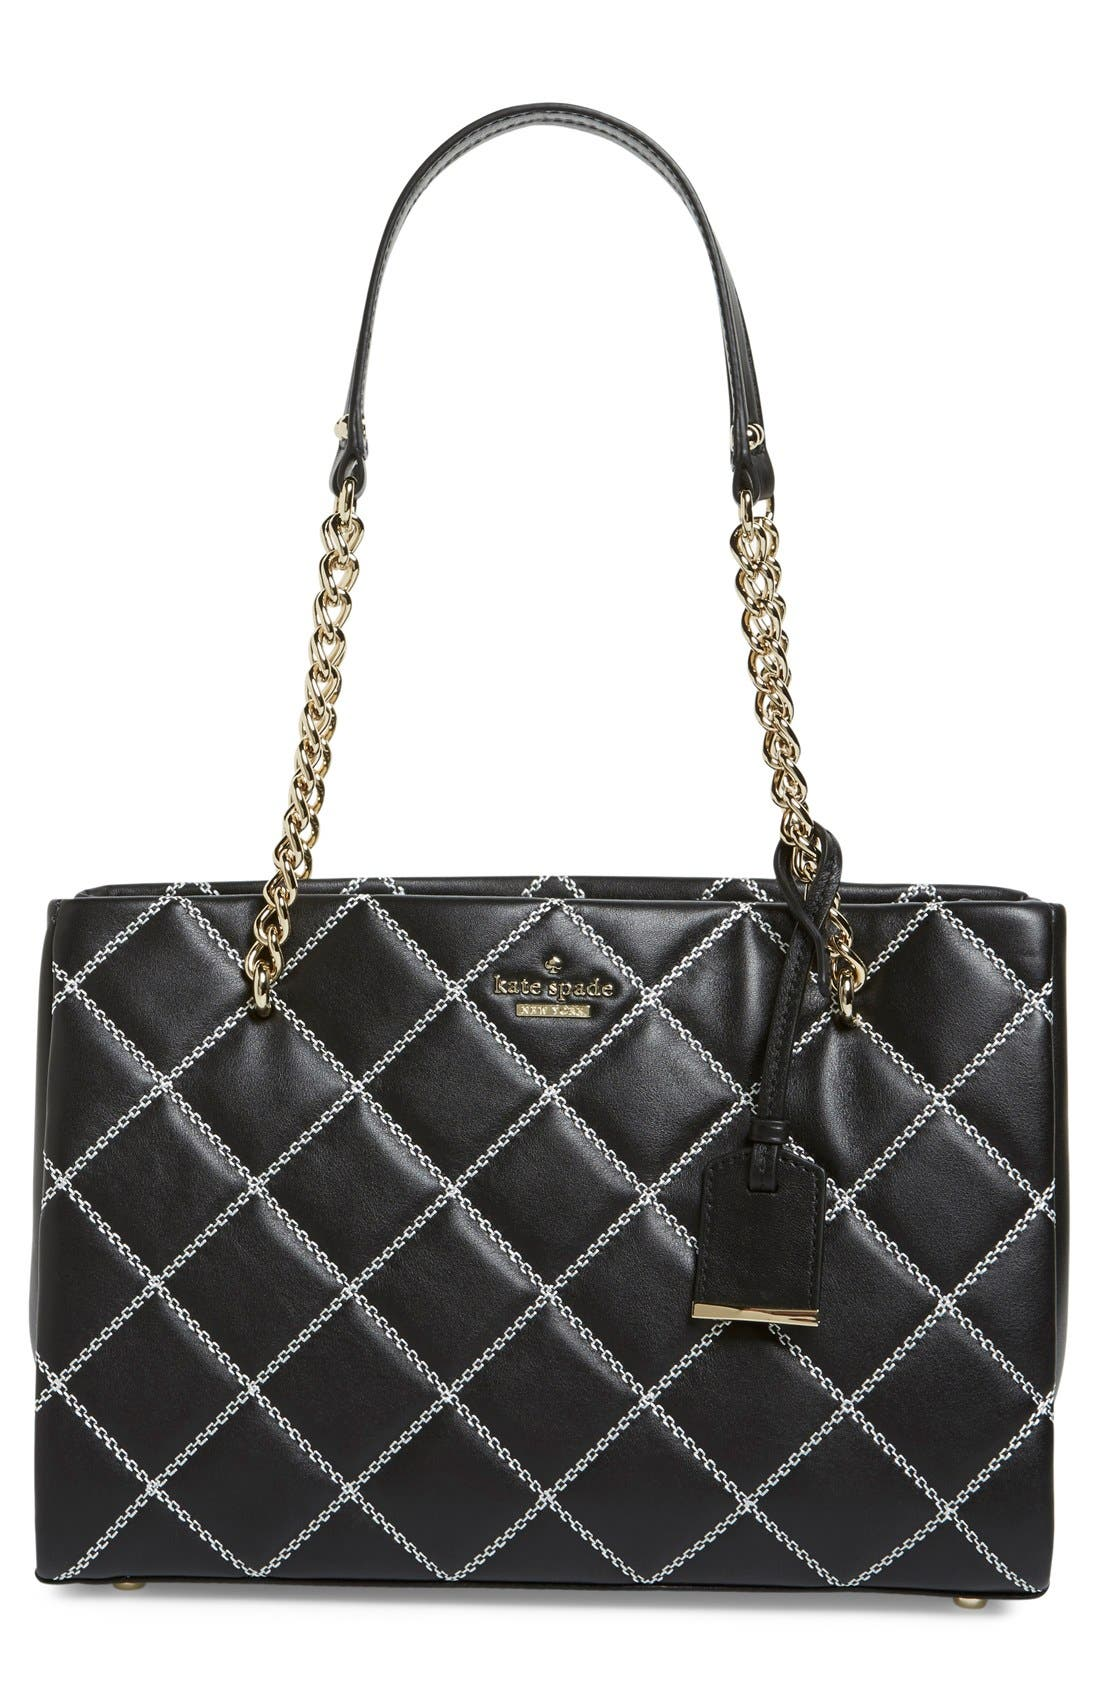 Main Image - kate spade new york 'emerson place - small phoebe' quilted leather shoulder bag